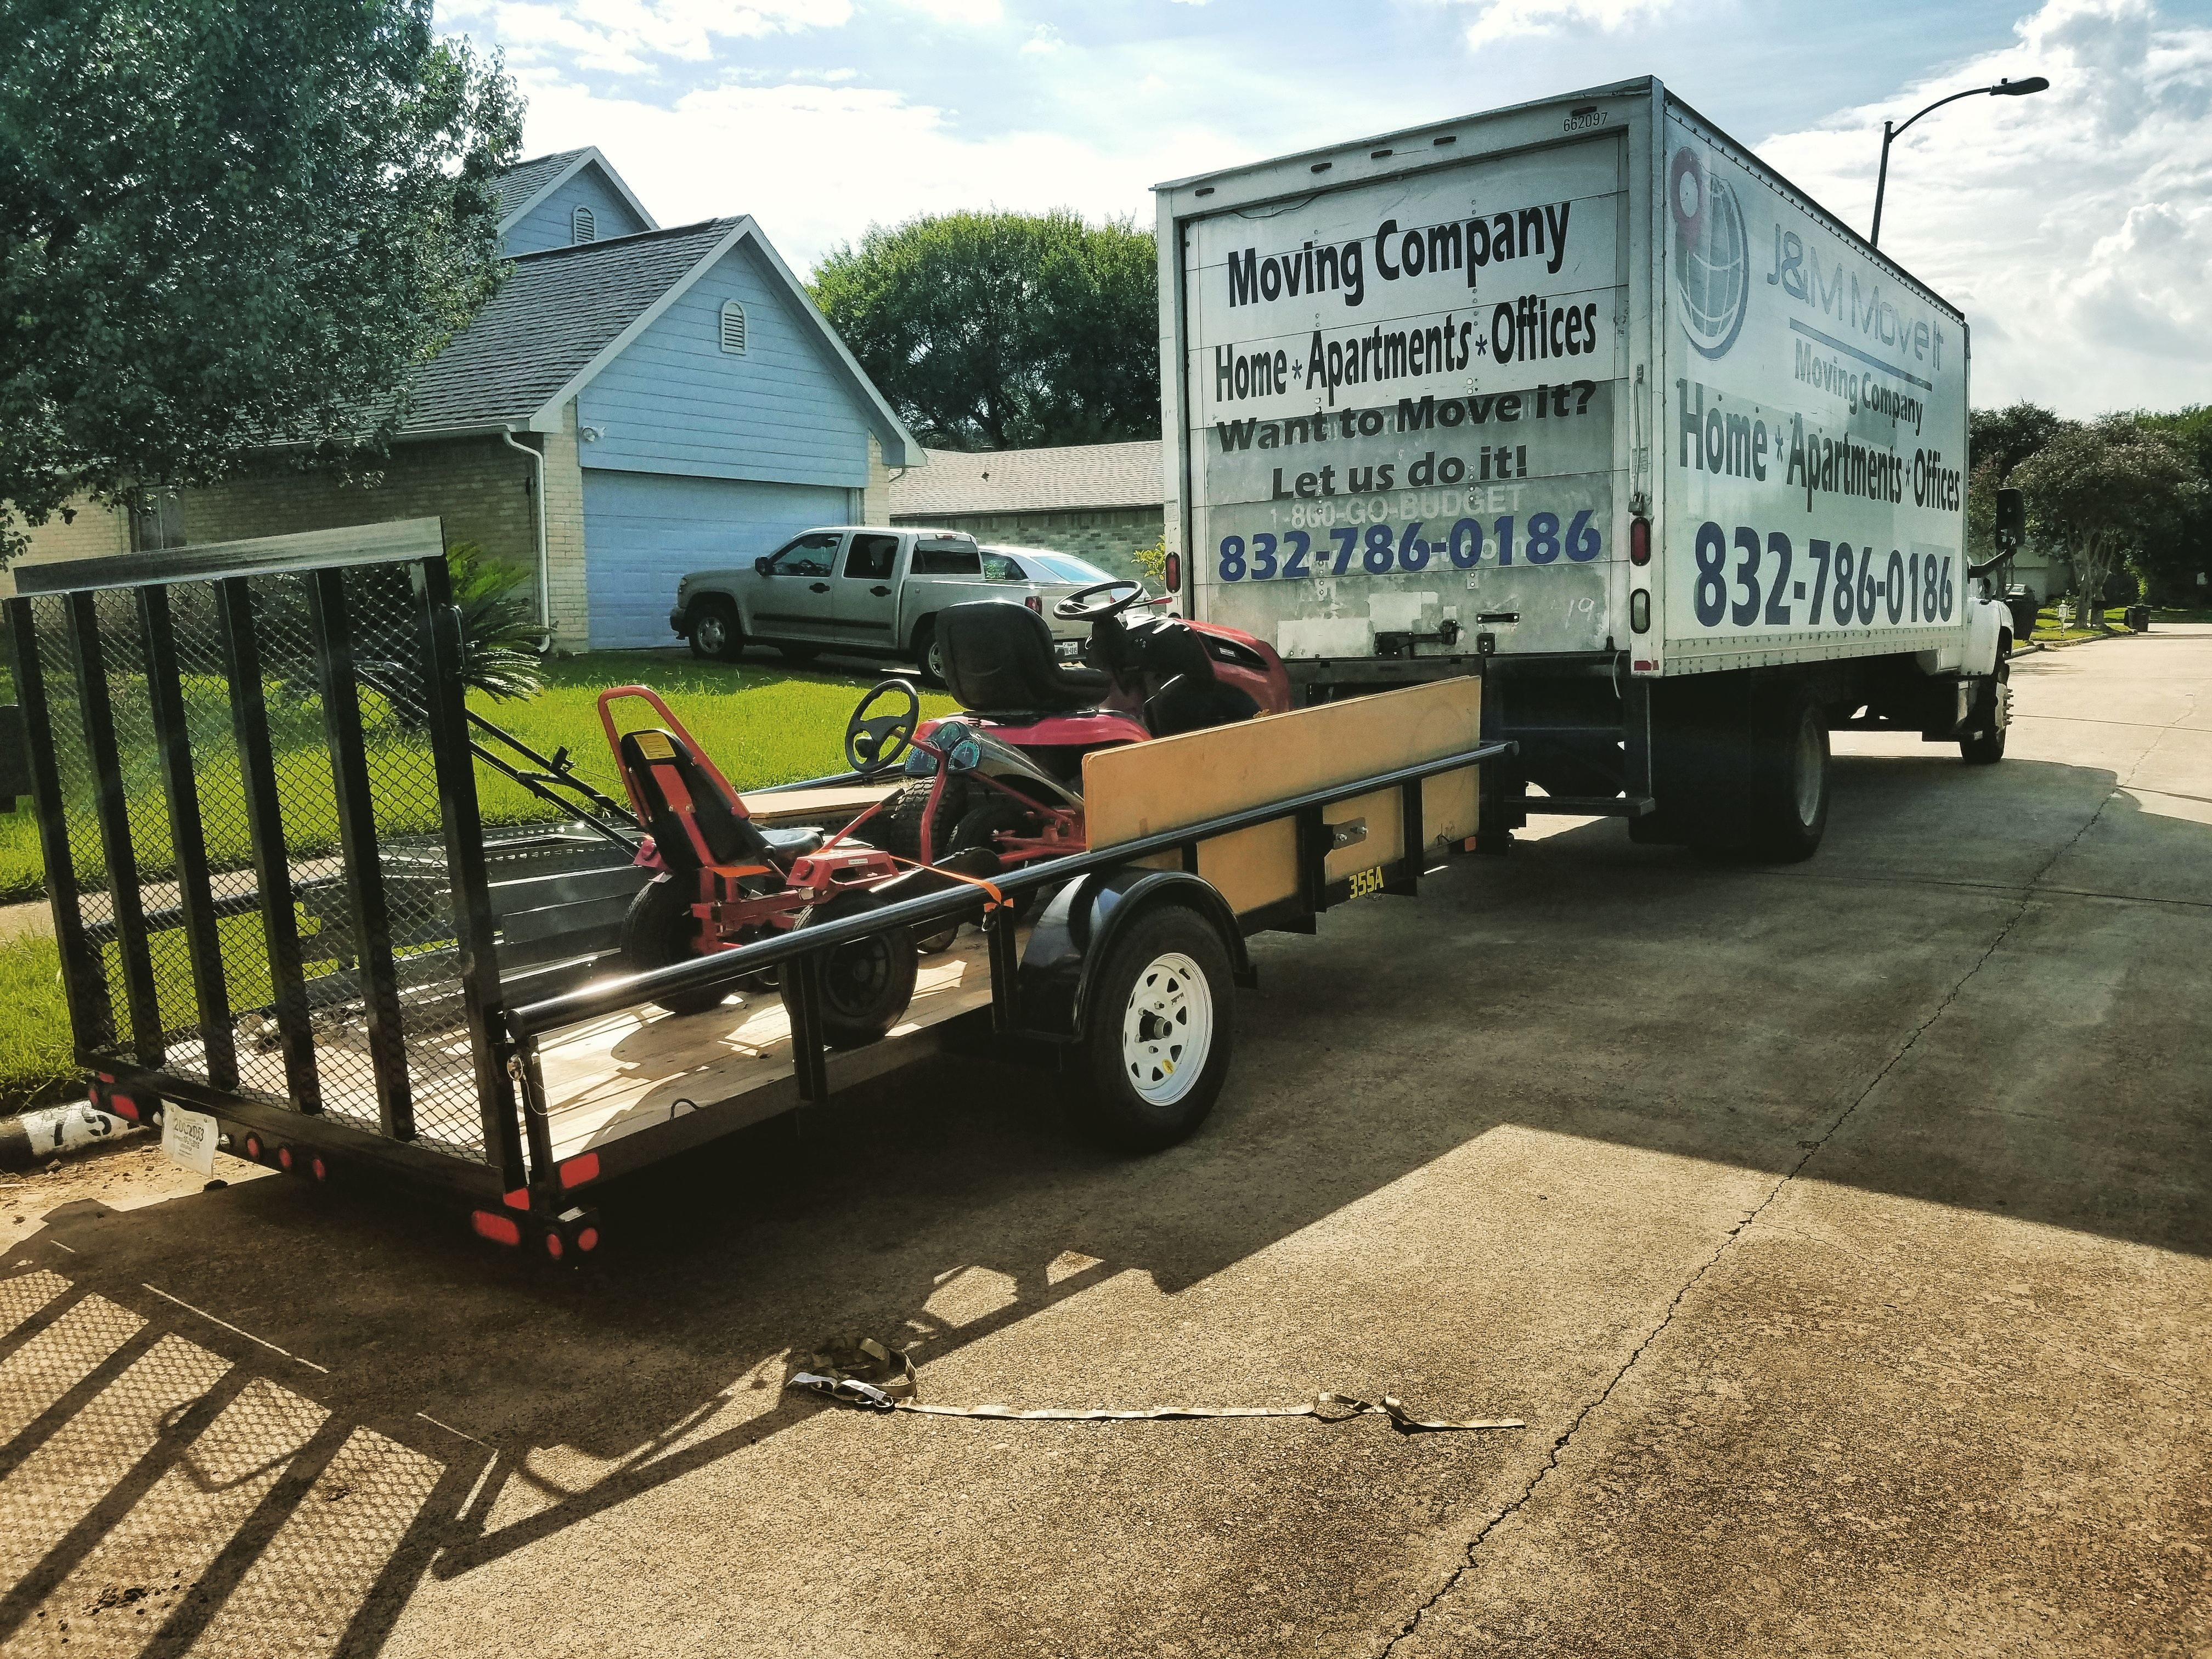 How To Move Plants Texas Move It Houston Moving Company Plants Guide